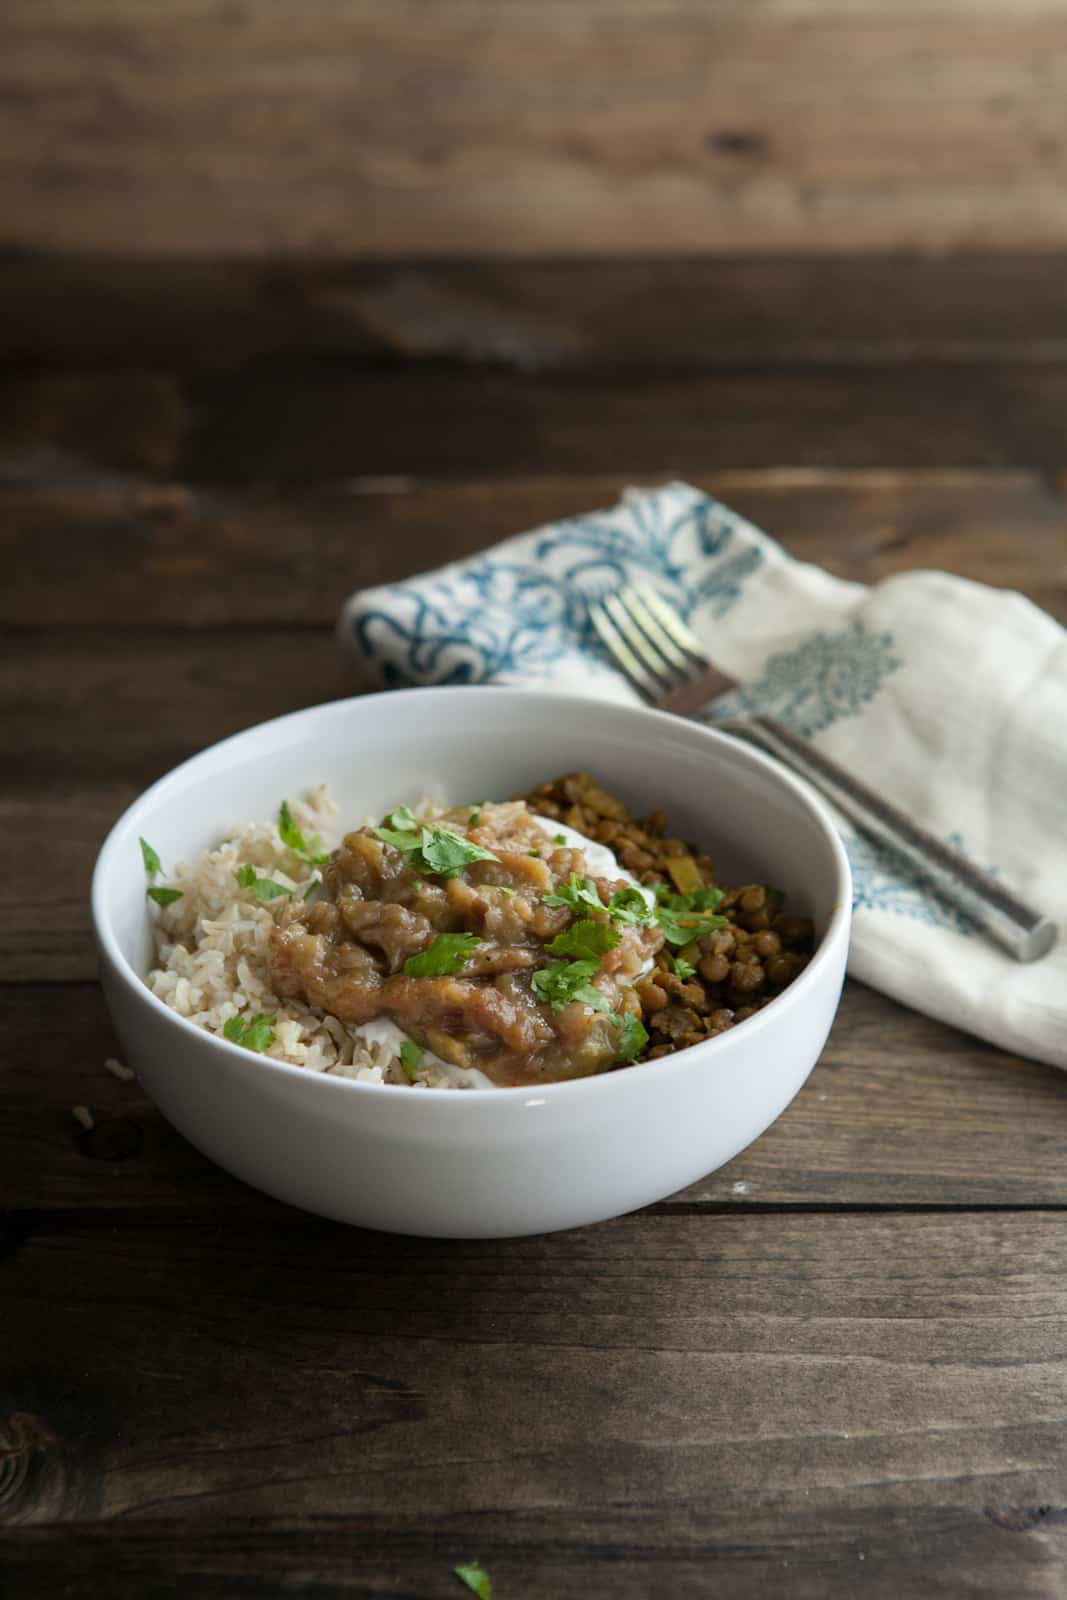 Flavorful curried lentils paired with tangy rhubarb chutney | naturallyella.com